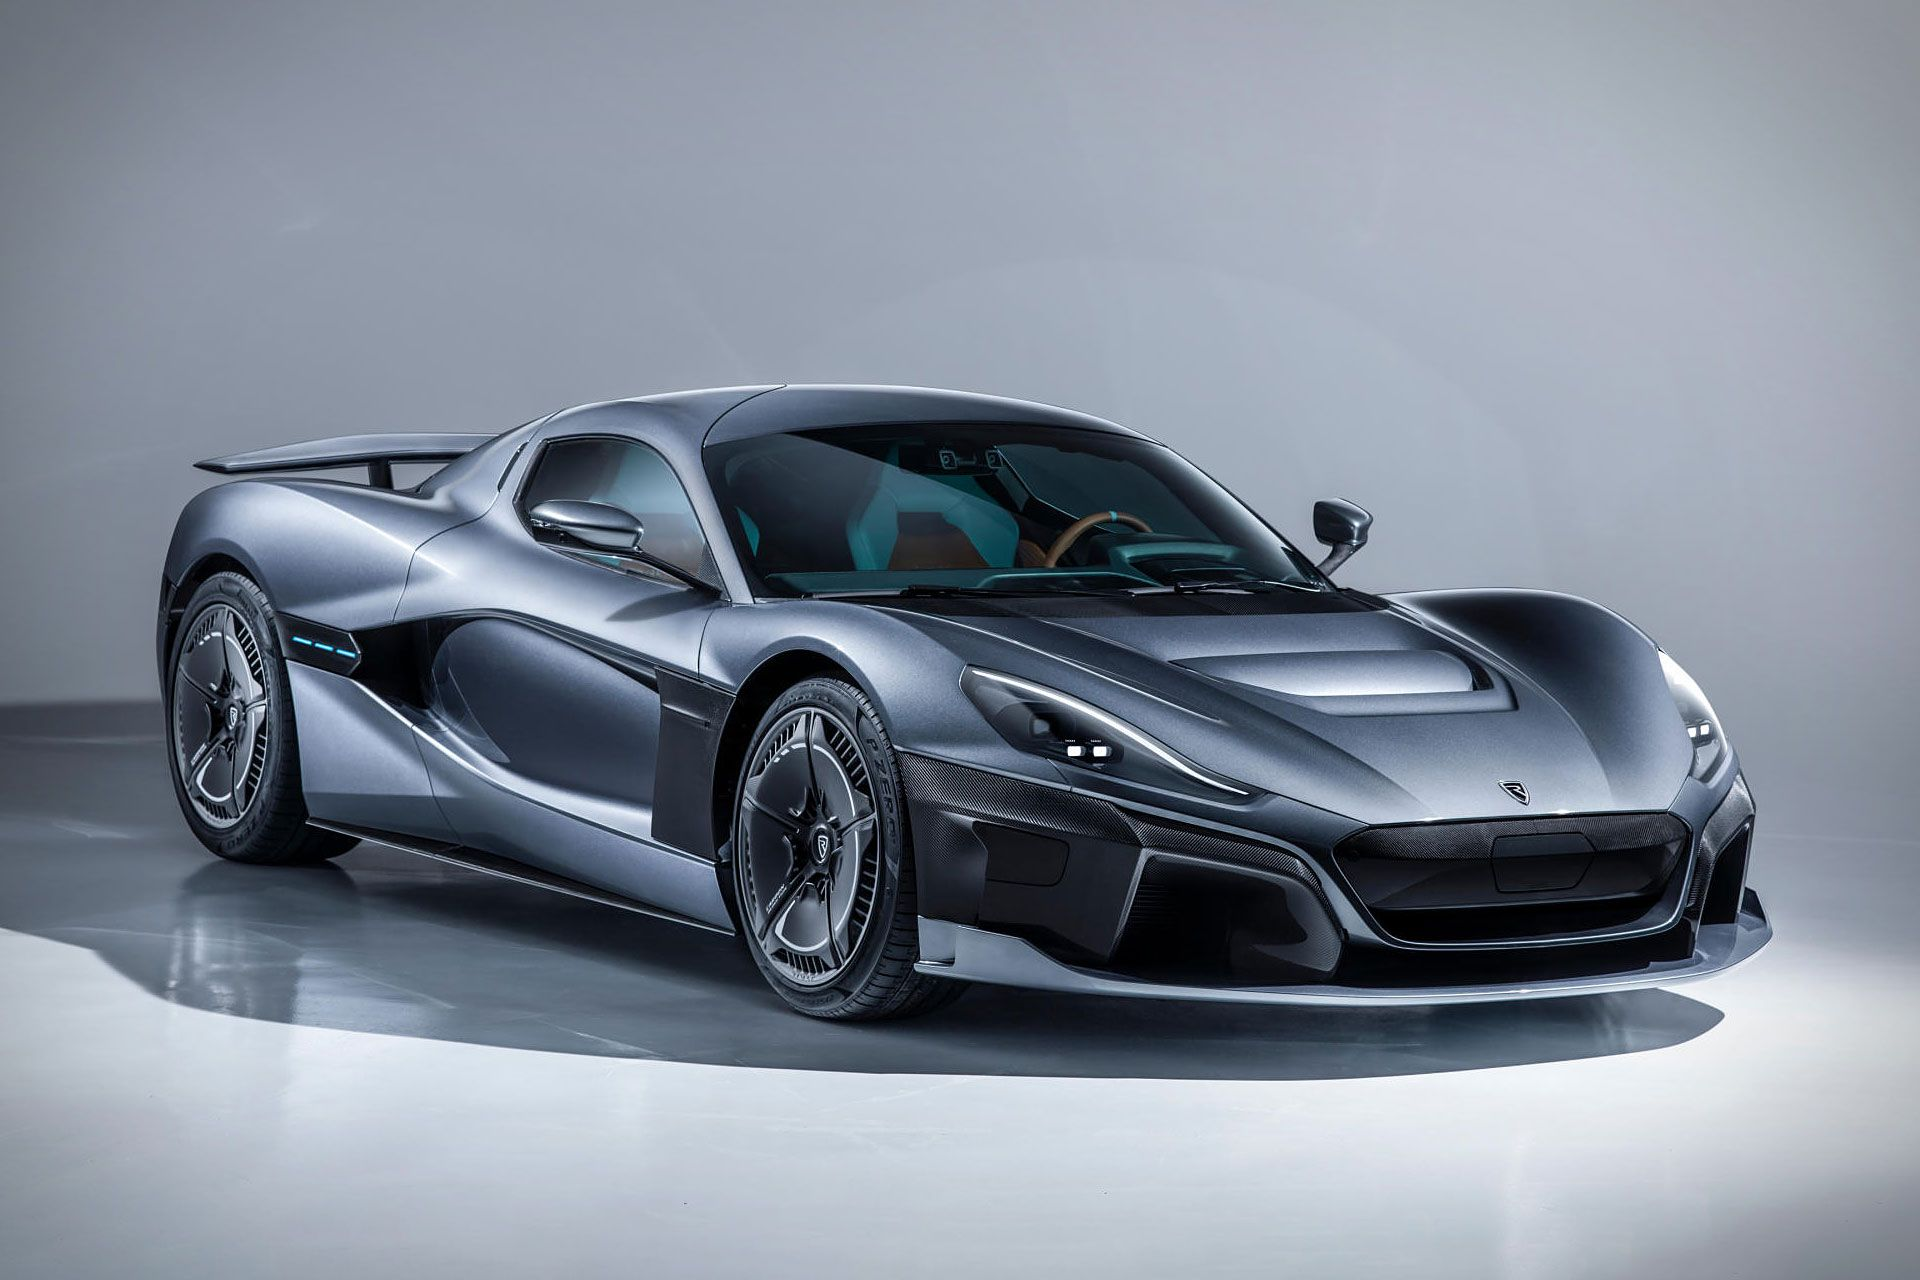 Croatian Manufacturer Rimac Put Itself On The Map With The Concept One Considered To Be The World S First Electric Su Super Cars Geneva Motor Show Sports Cars